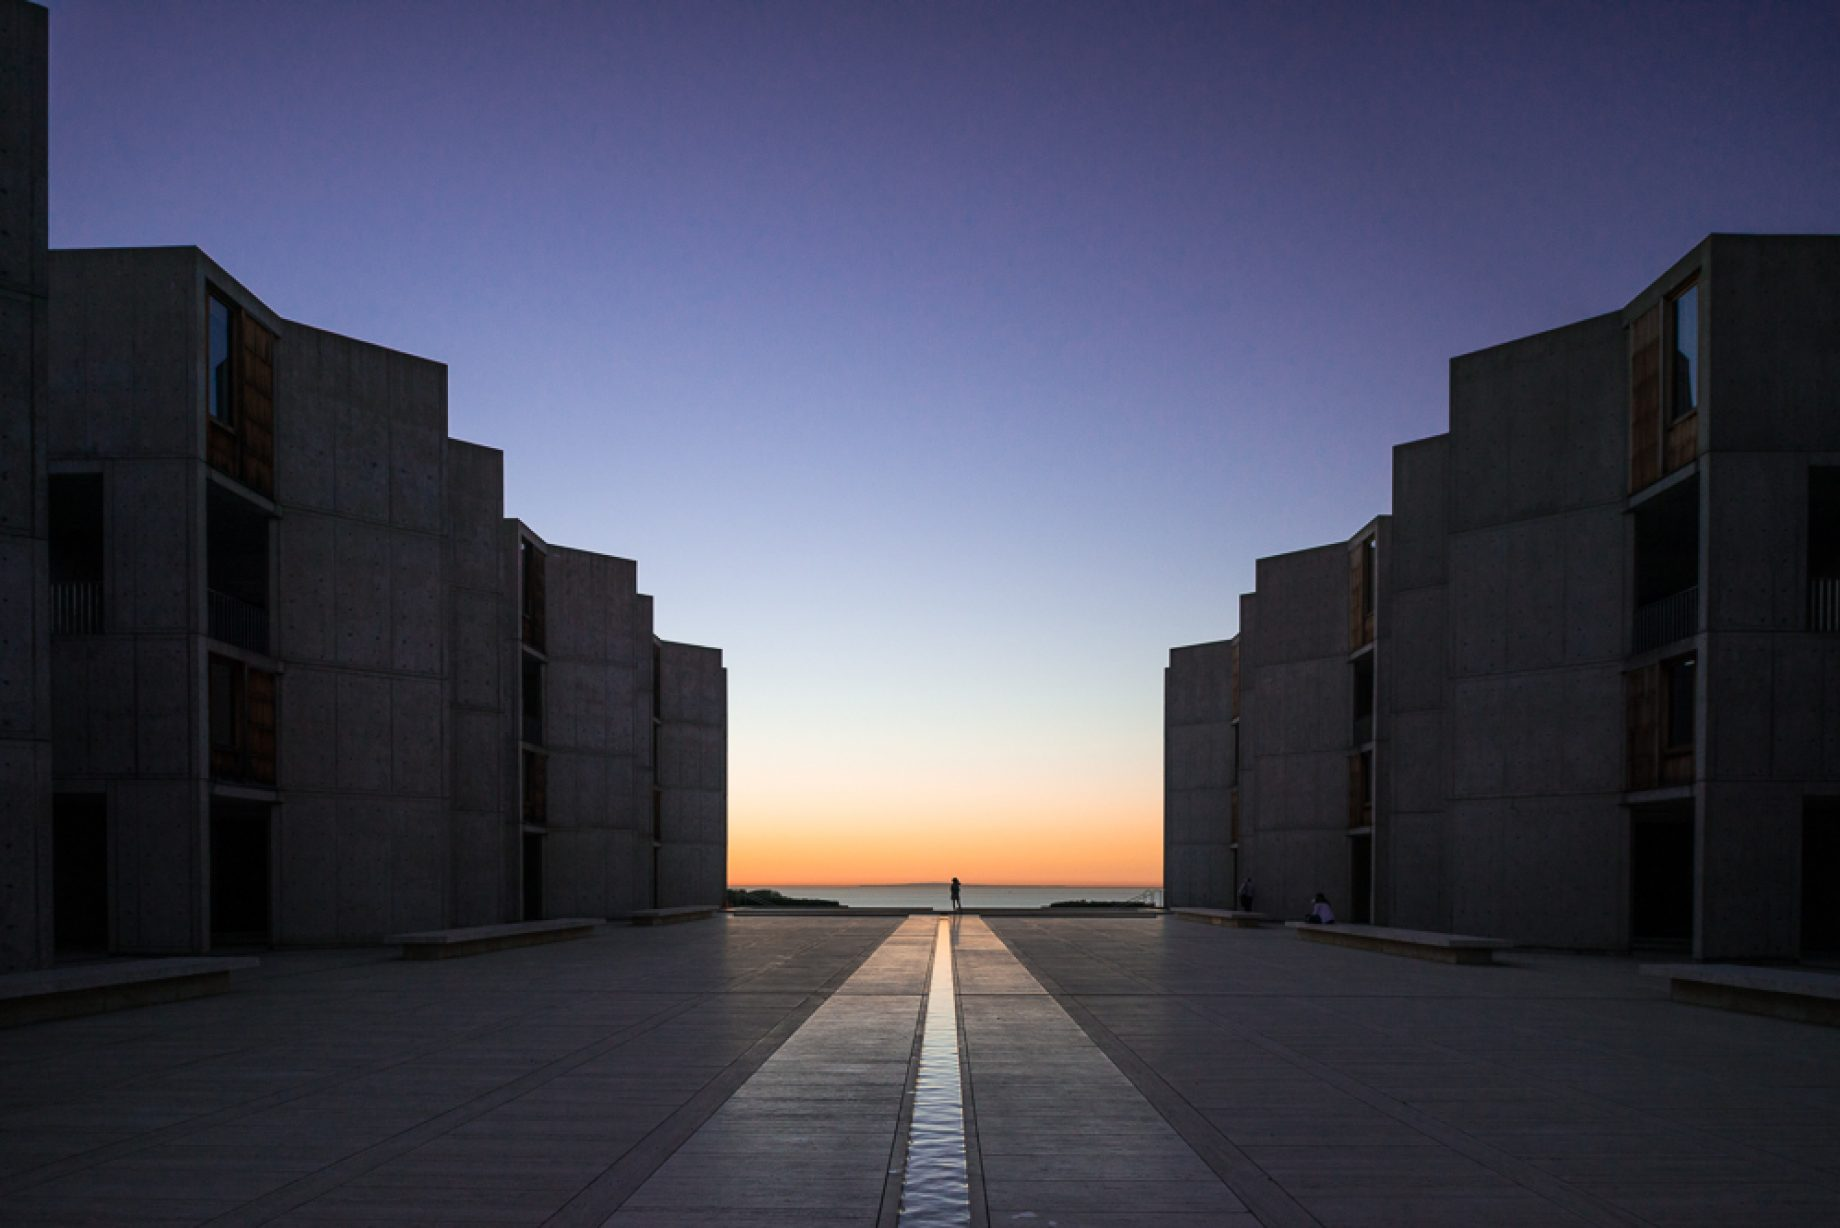 salk Institute architectural photography studio maha